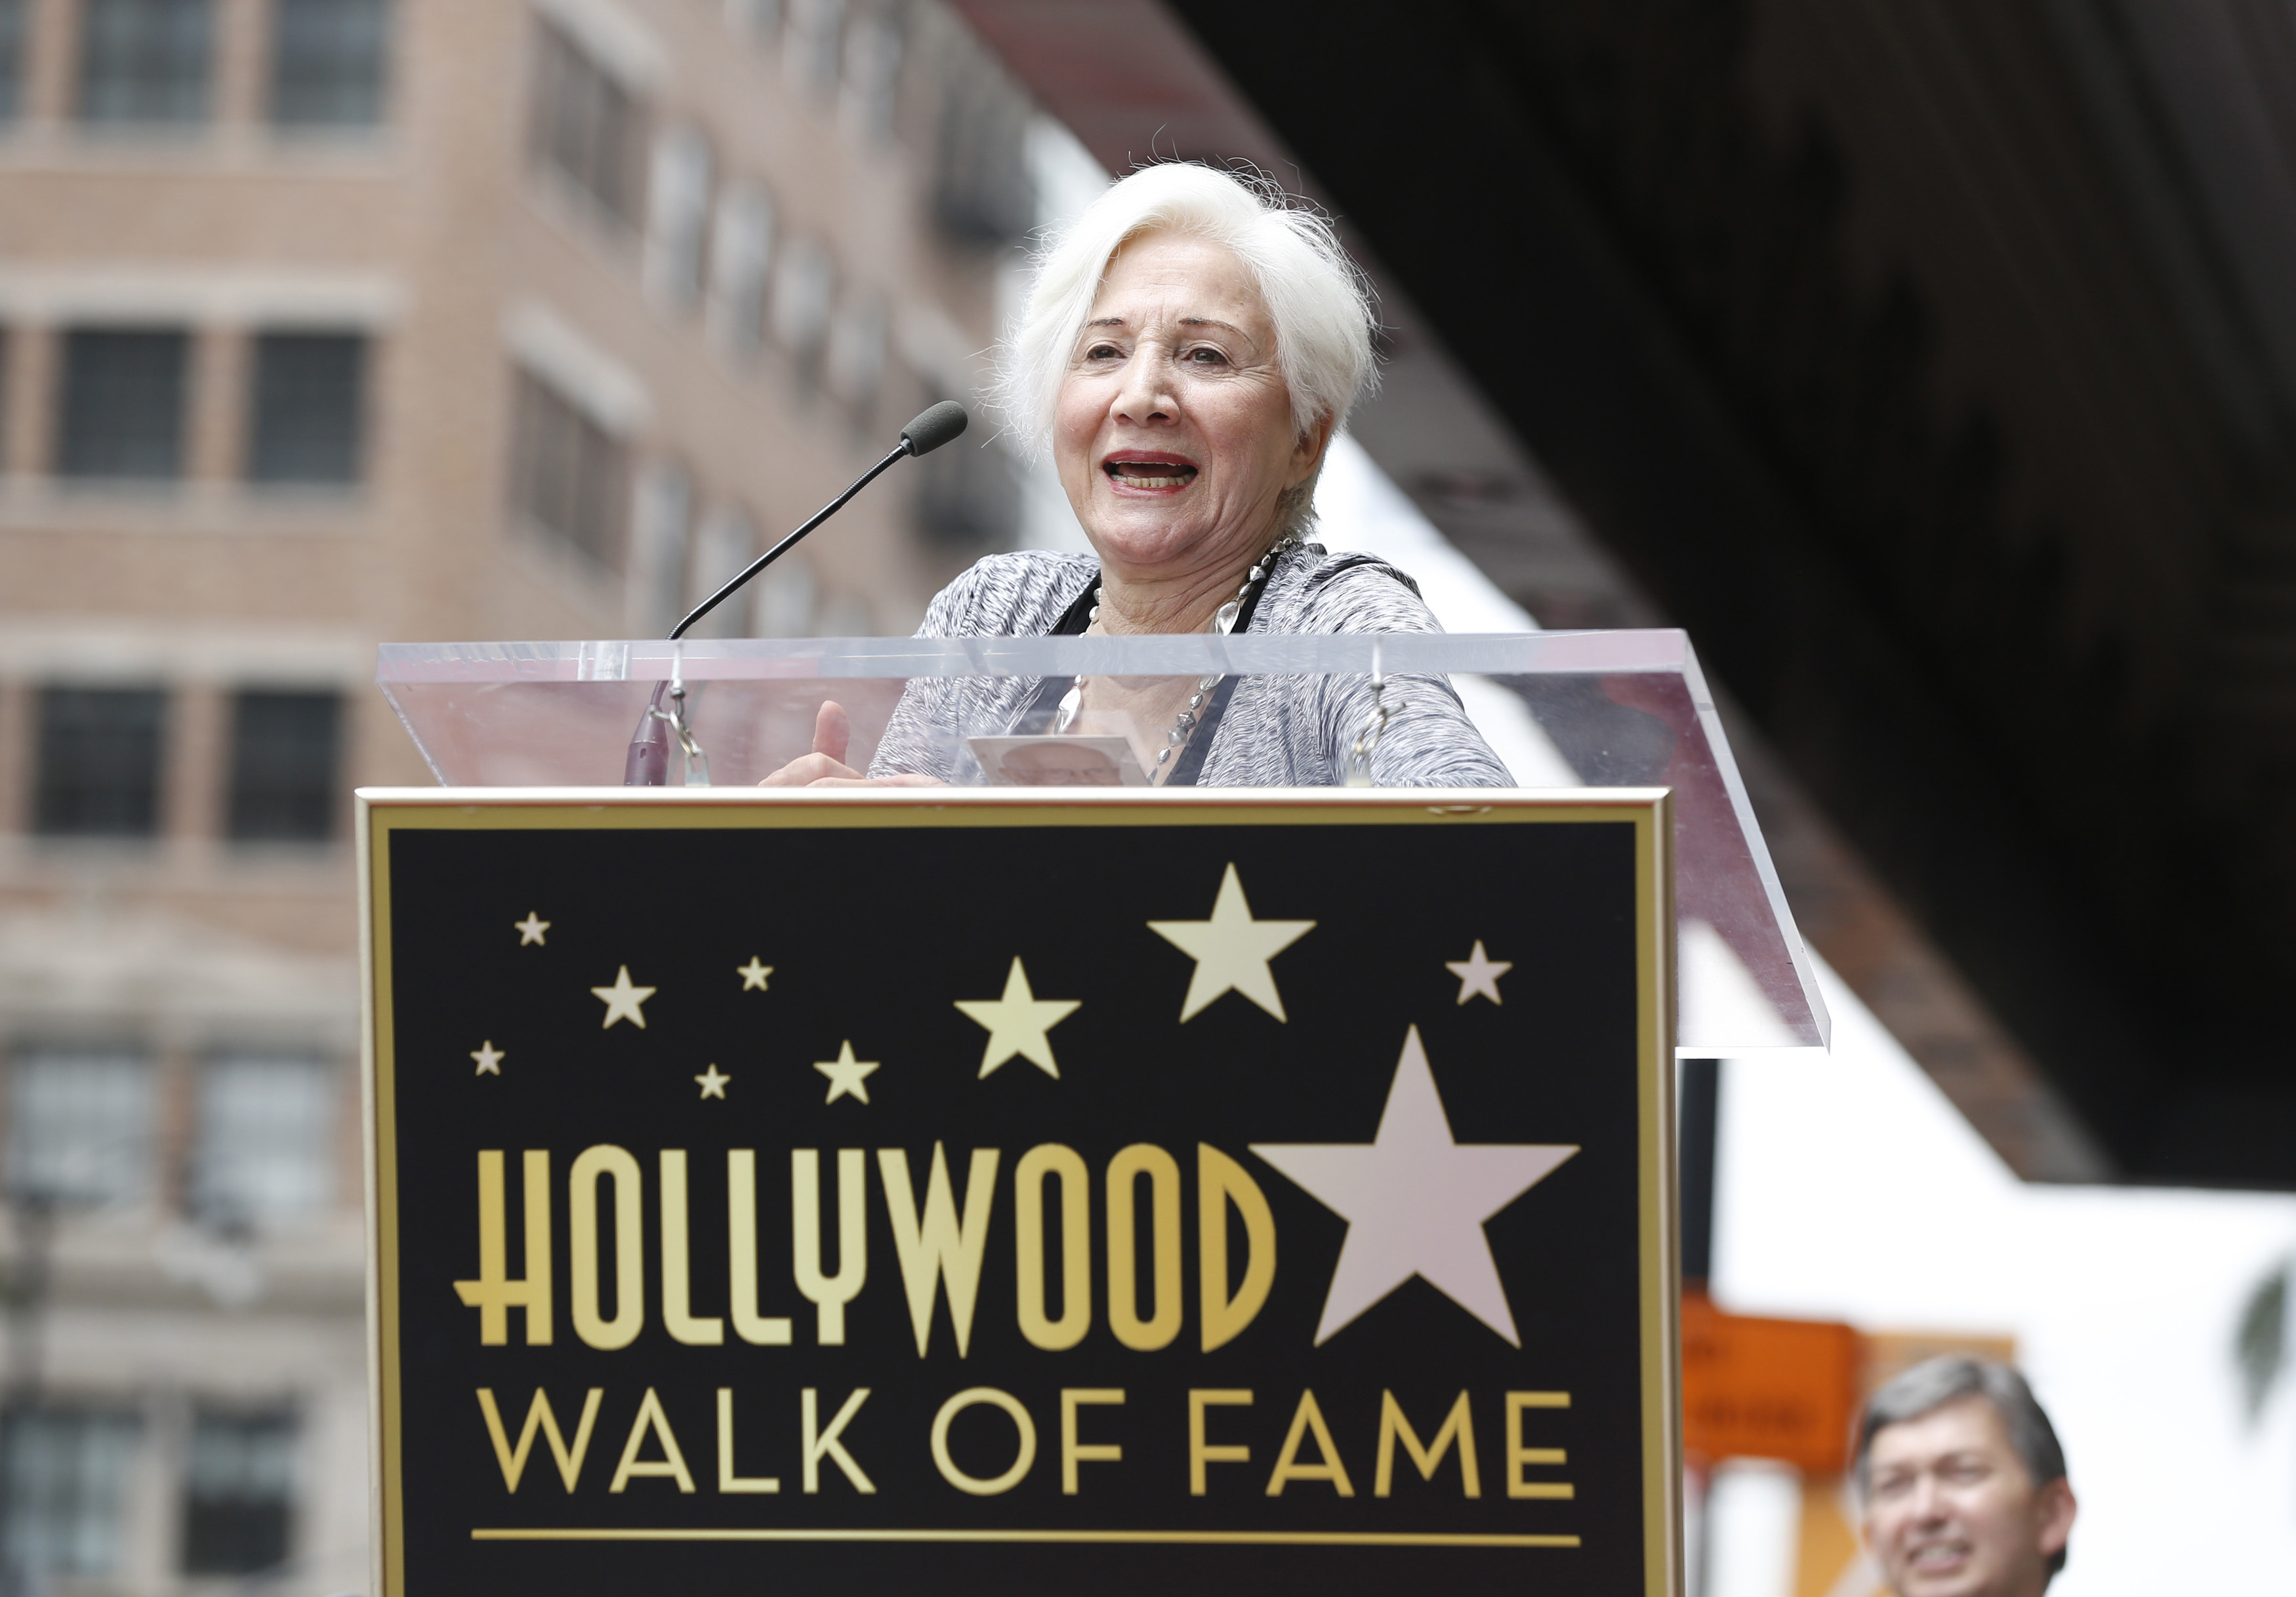 Actress Olympia Dukakis speaks at the ceremony for the unveiling of her star on the Walk of Fame in Los Angeles, California May 24, 2013.  REUTERS/Mario Anzuoni